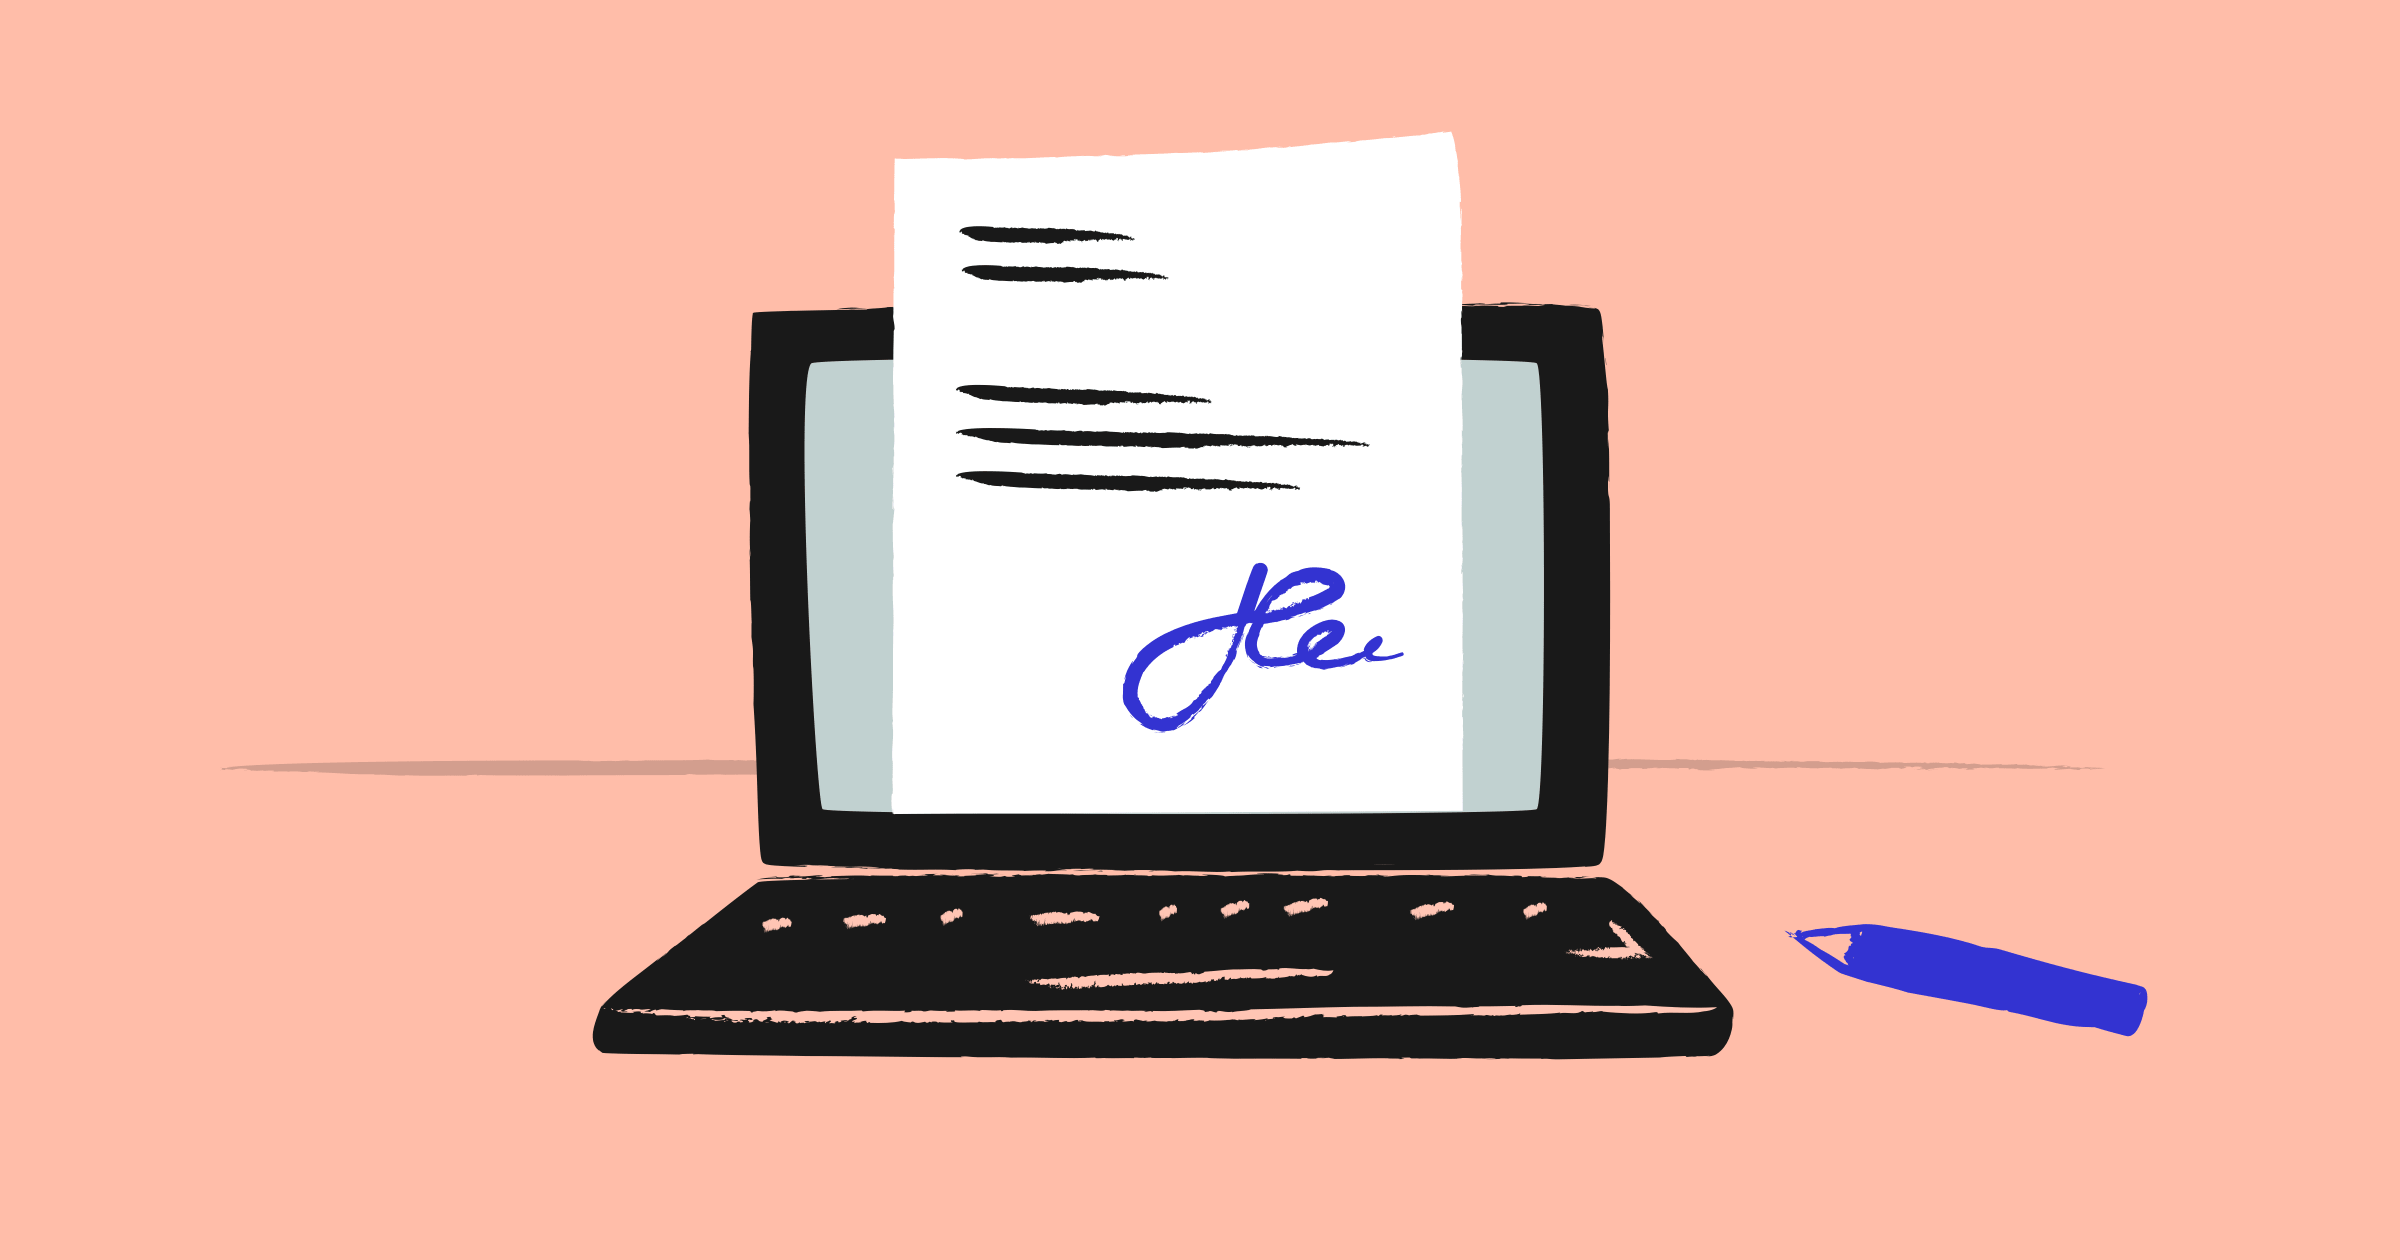 What are electronic signatures and how do they work?